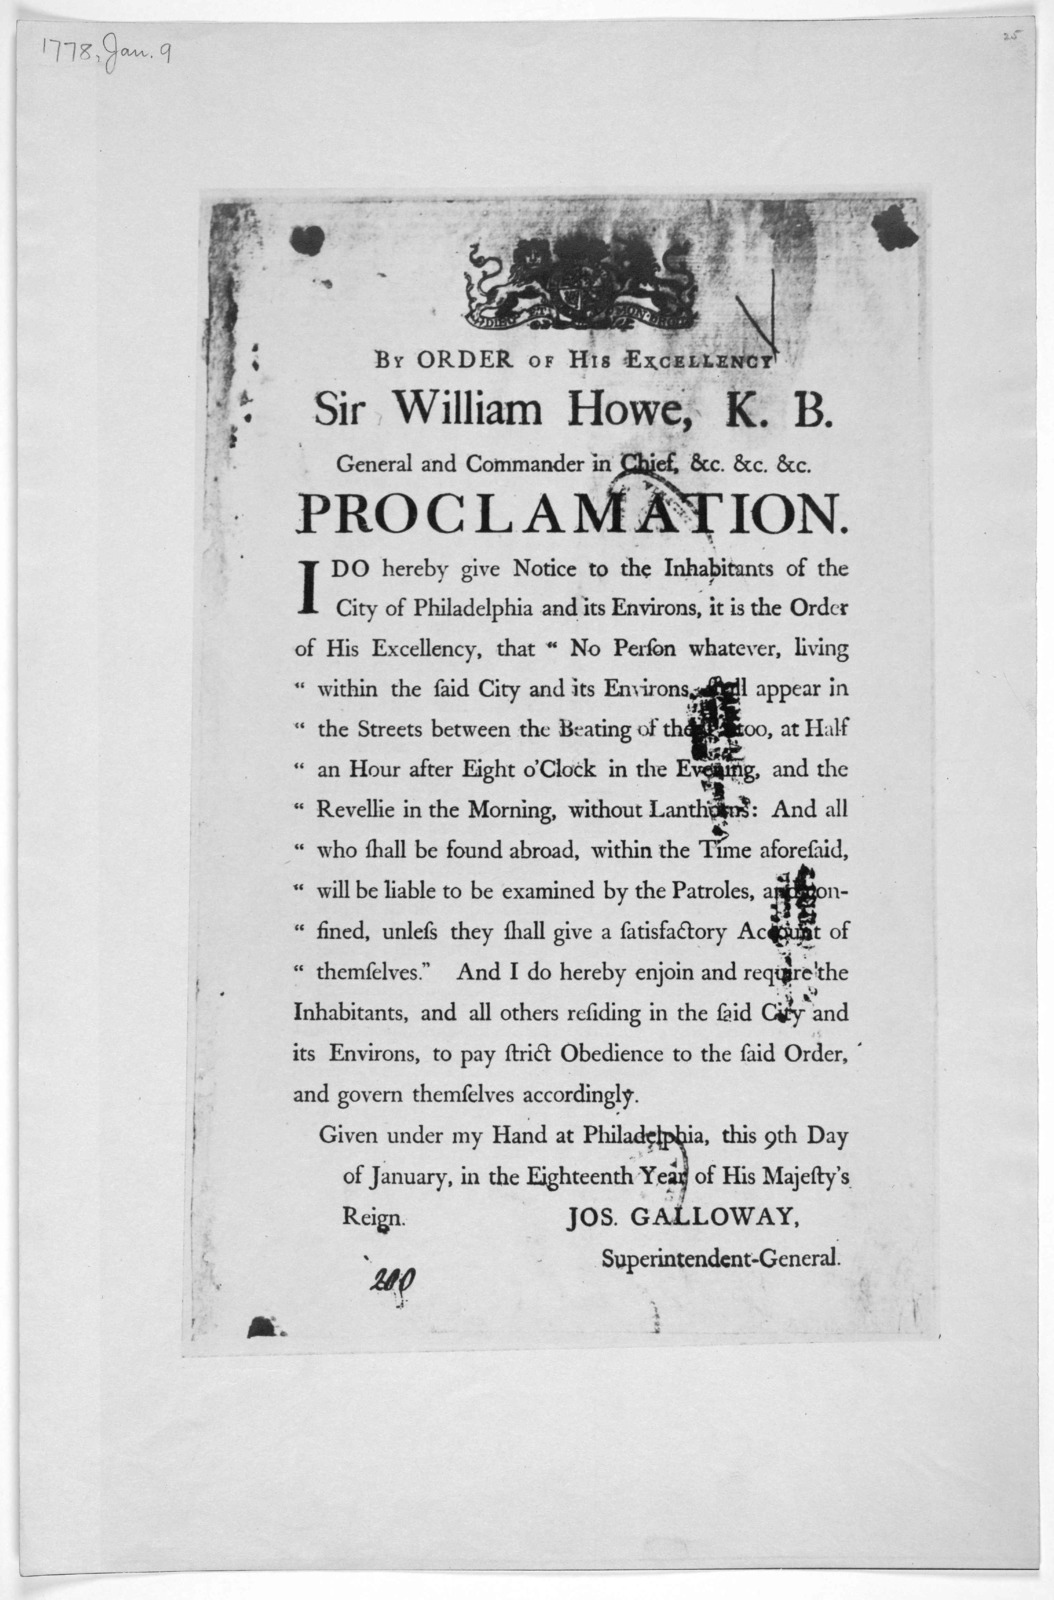 [Arms] By order of His Excellency Sir William Howe, K. B. General and commander in Chief, &c. &c. &c. proclamation. I do hereby give notice to the inhabitants of the City of Philadelphia and its Environs, it is the order of His Excellency, that